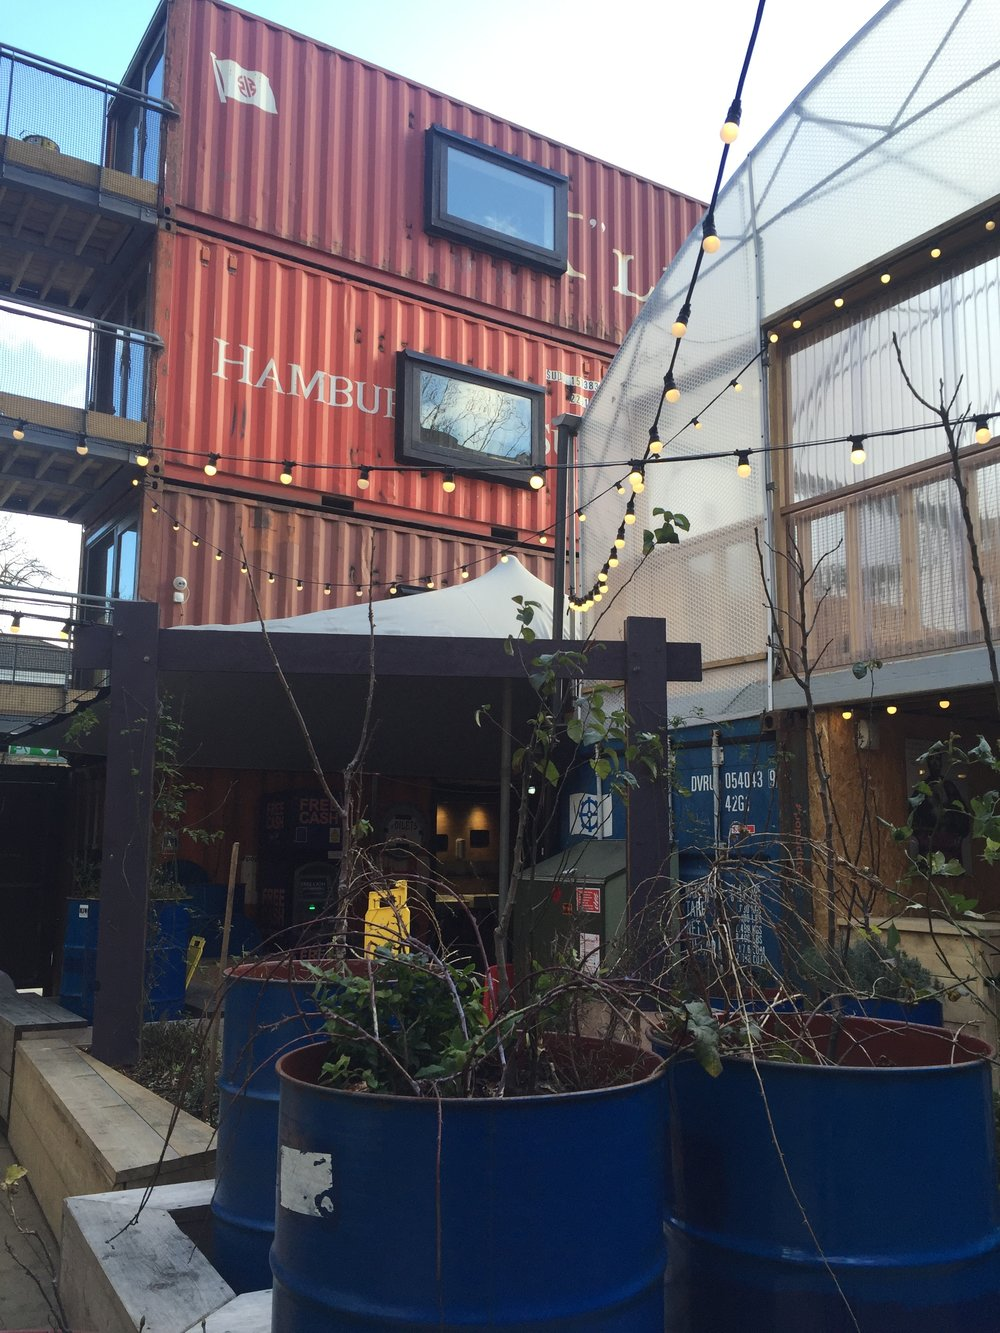 Site visit to Pop Brixton in London to get a feel for shipping containers.